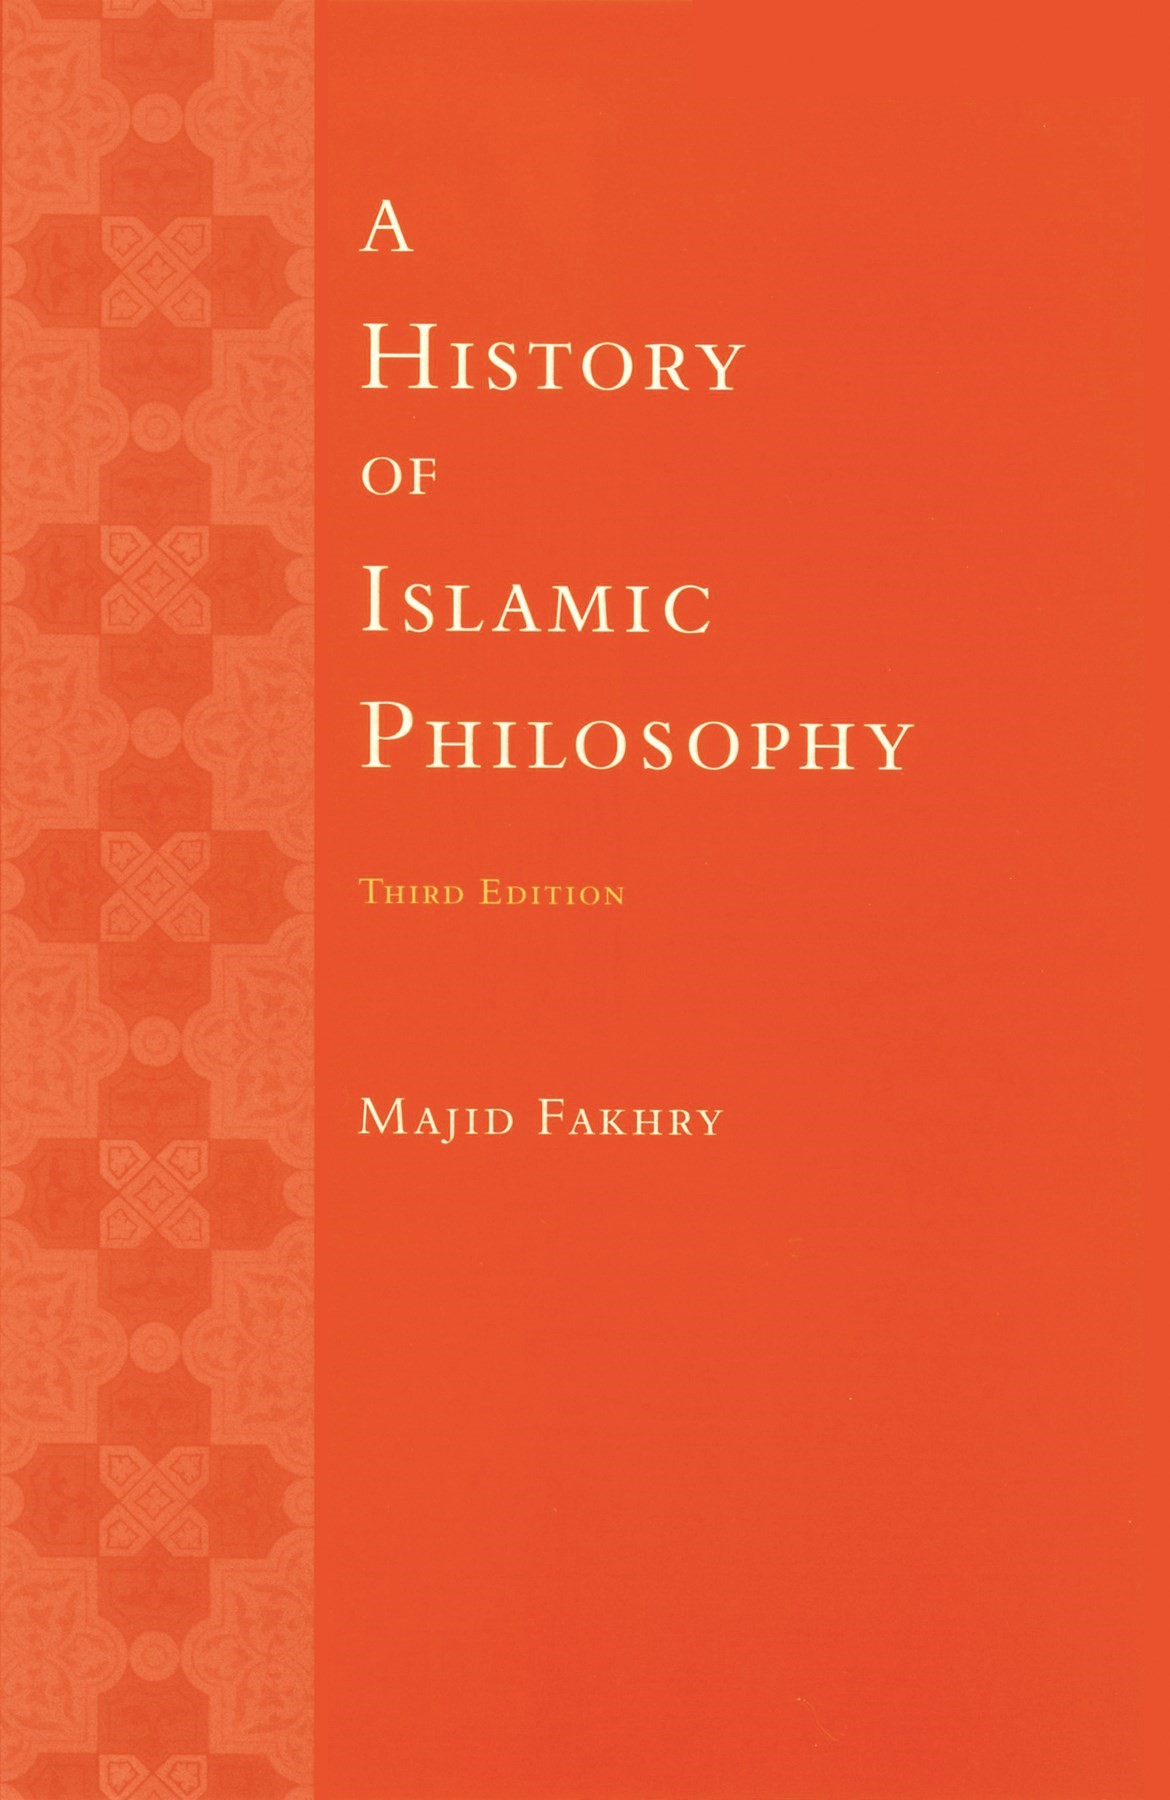 Abbildung von Fakhry | A History of Islamic Philosophy | third edition | 2004